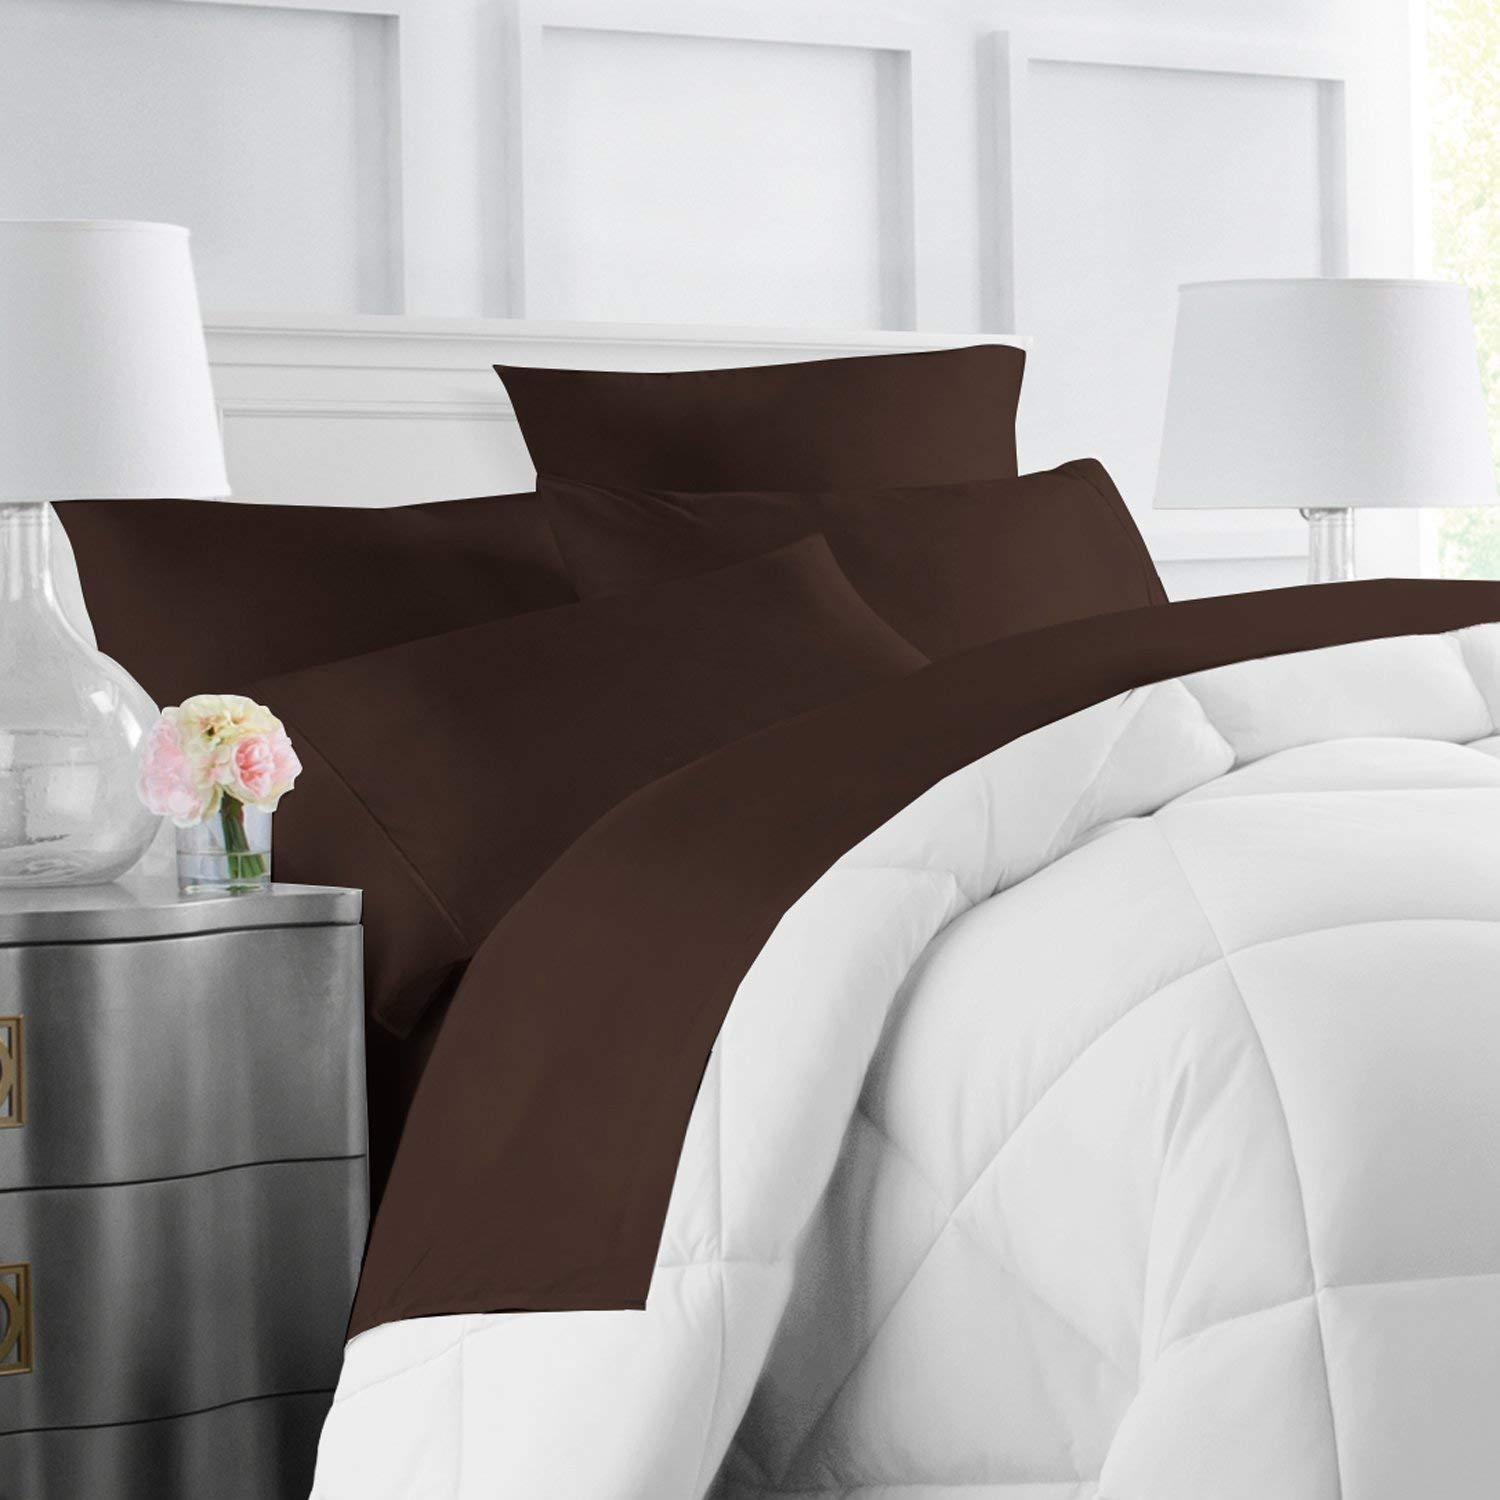 Egyptian Luxury Hotel Collection 4-Piece Bed Sheet Set - Deep Pockets, Wrinkle and Fade Resistant, Hypoallergenic Sheet and Pillow Case Set - Queen, Chocolate